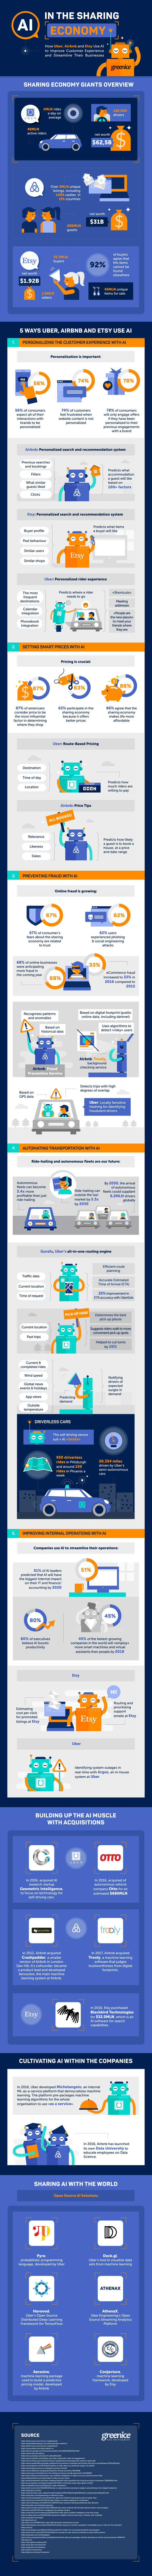 Why AI Is The Future Of The Sharing Economy That Has Already Started [Infographic]